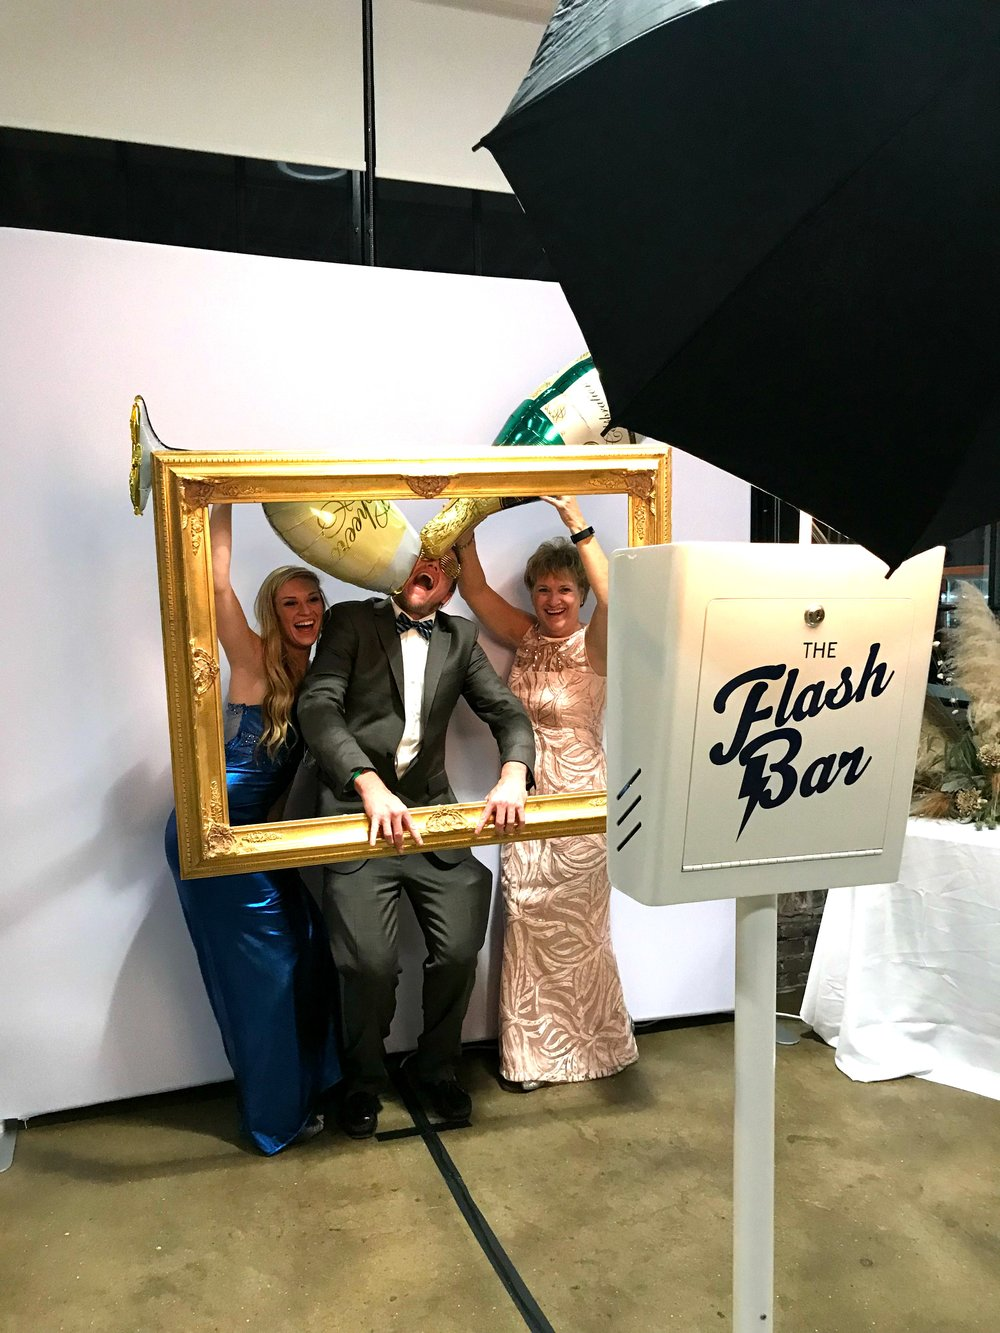 Birmingham Alabama wedding photo booth custom props events at haven downtown birmingham